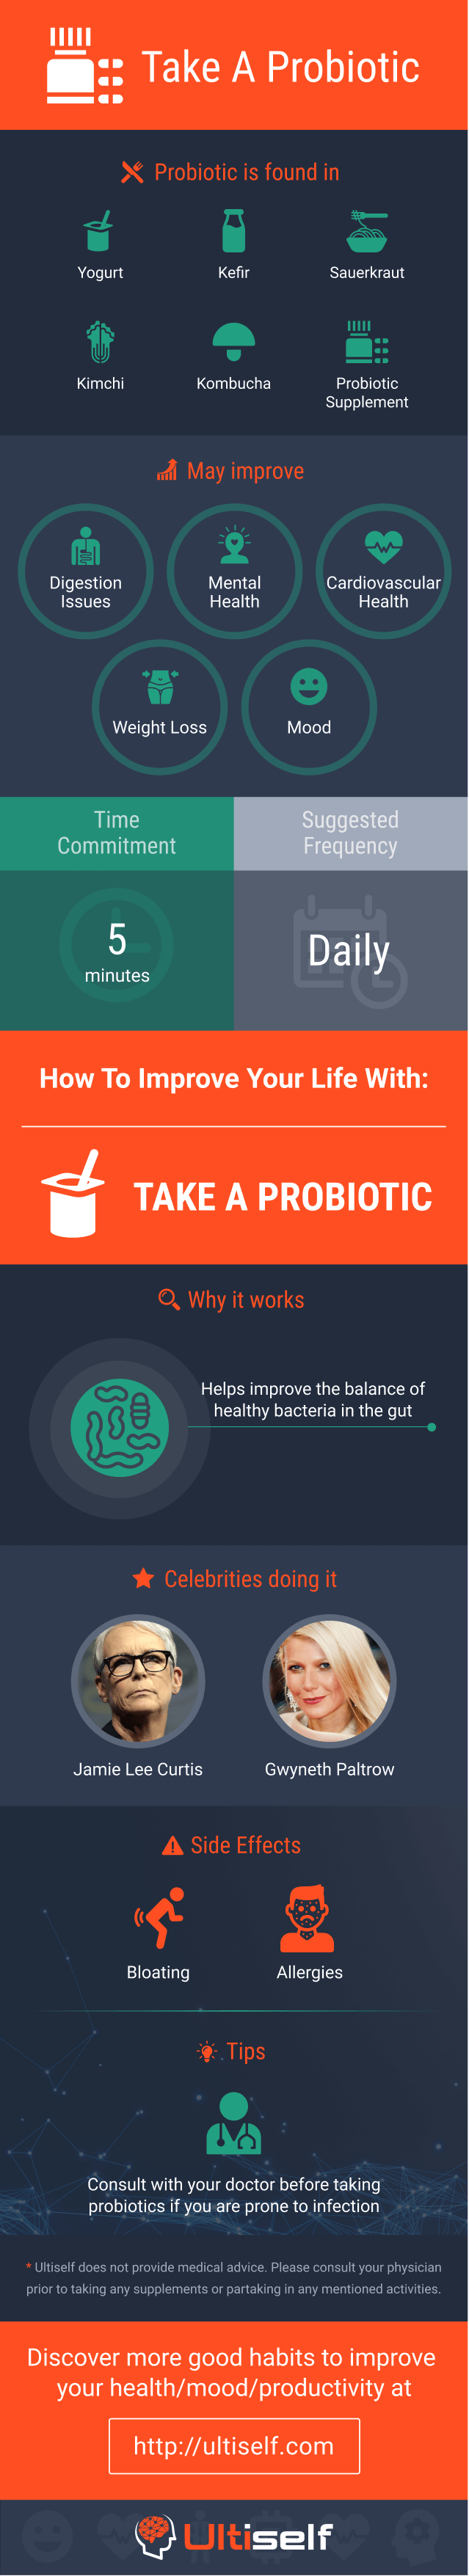 Take Probiotic infographic